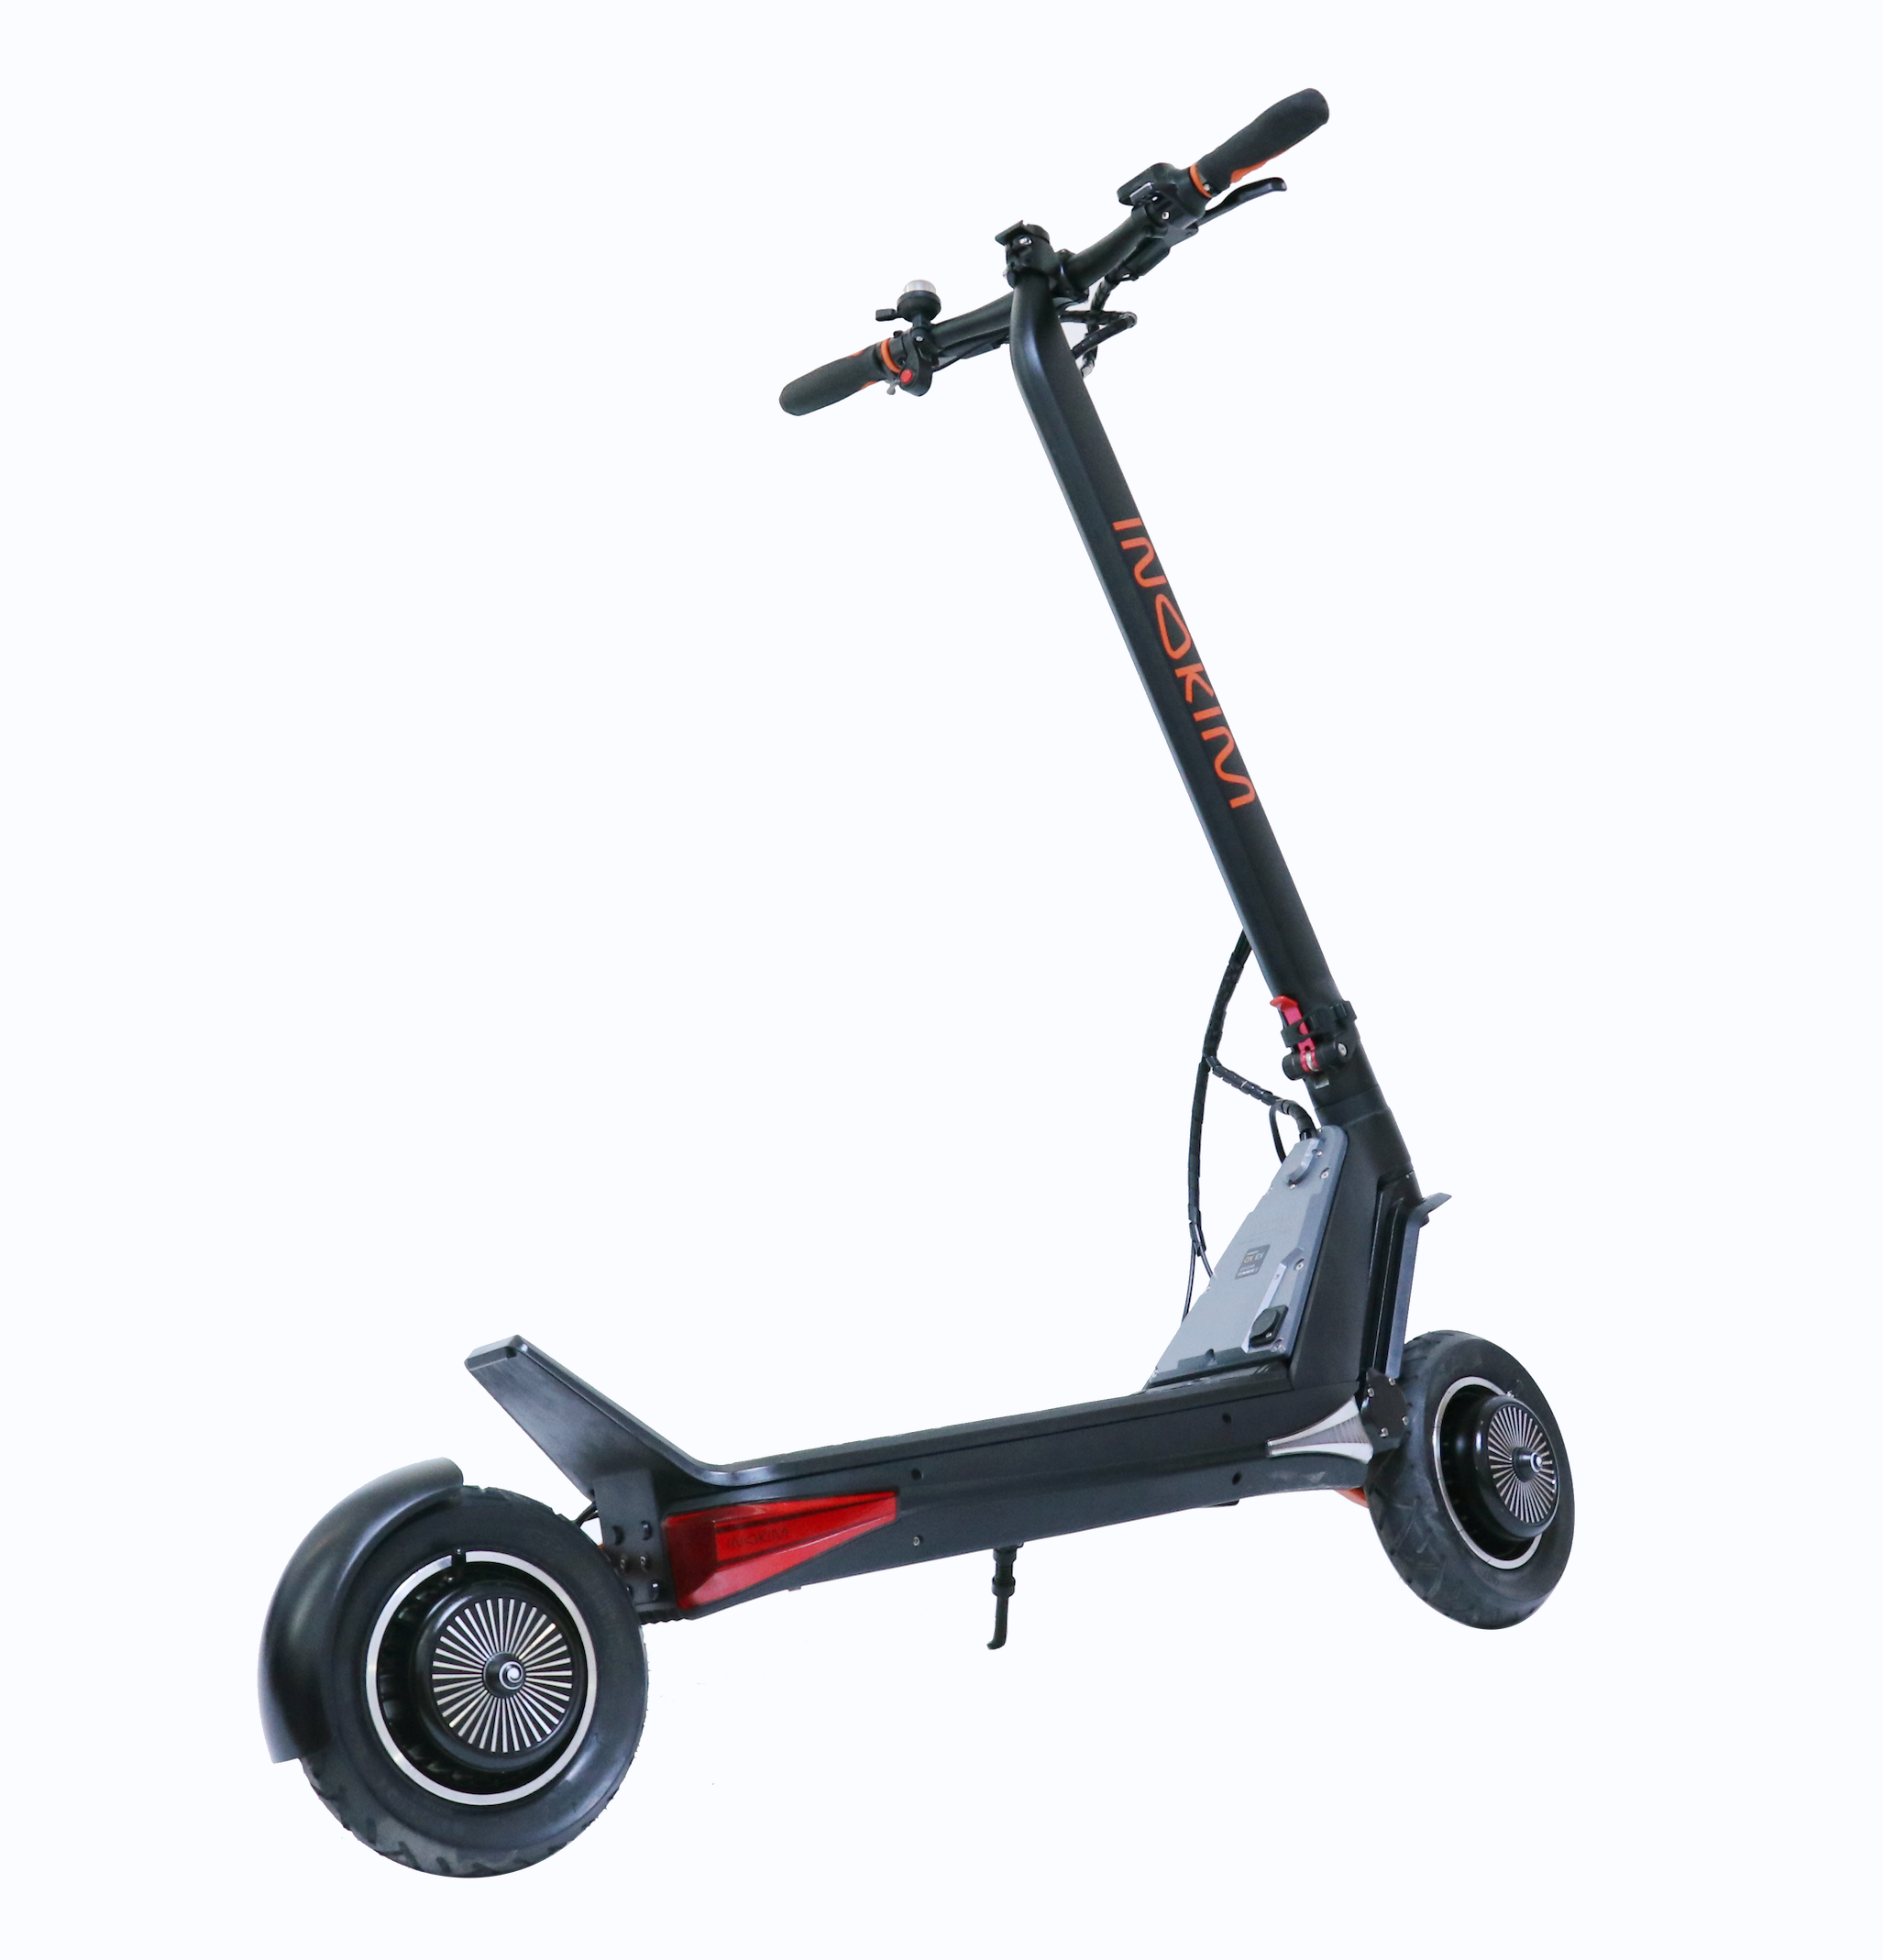 Inokim OXO Electric Scooter Side View Image